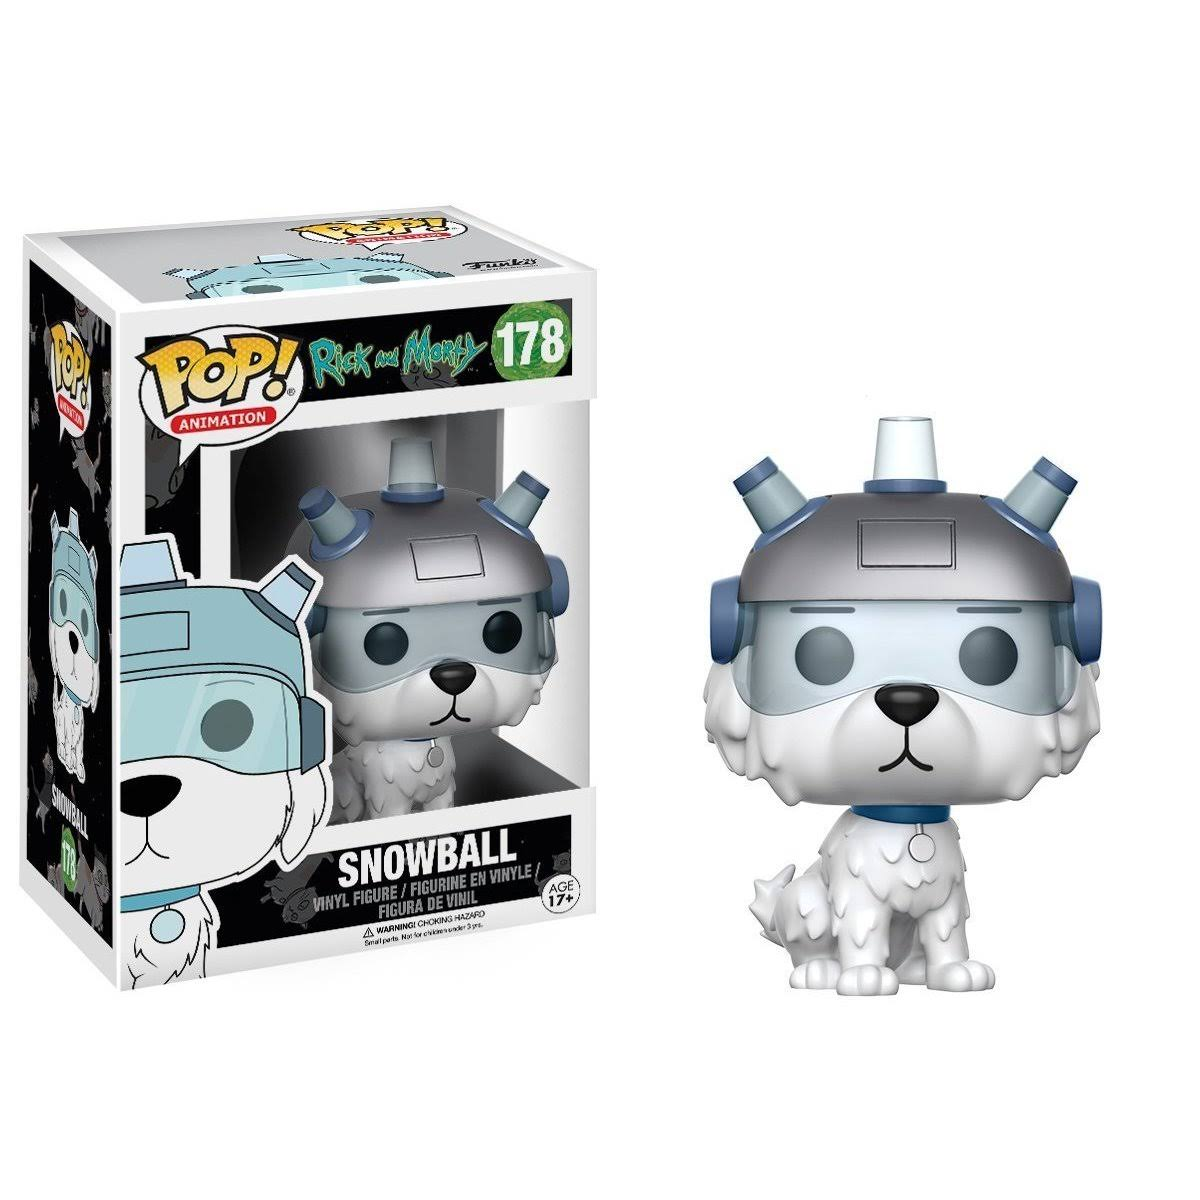 Funko 178 Pop Animation Rick and Morty Vinyl Figure - Snowball